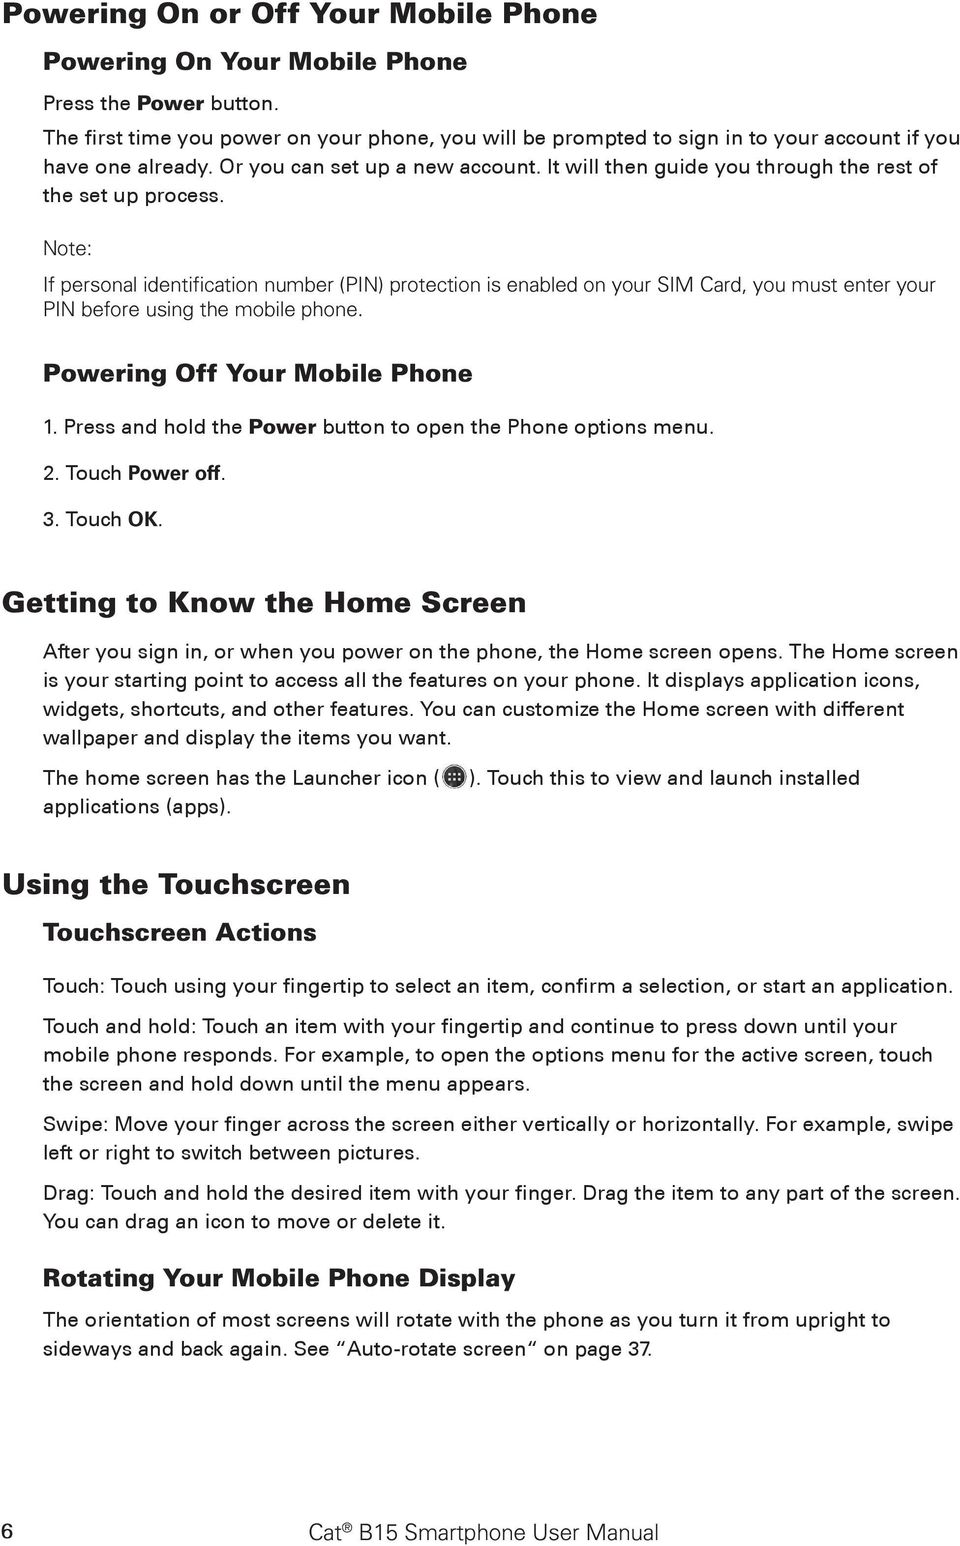 ... Cat B15 Smartphone User Manual. It will then guide you through the rest  of the set up process. If personal